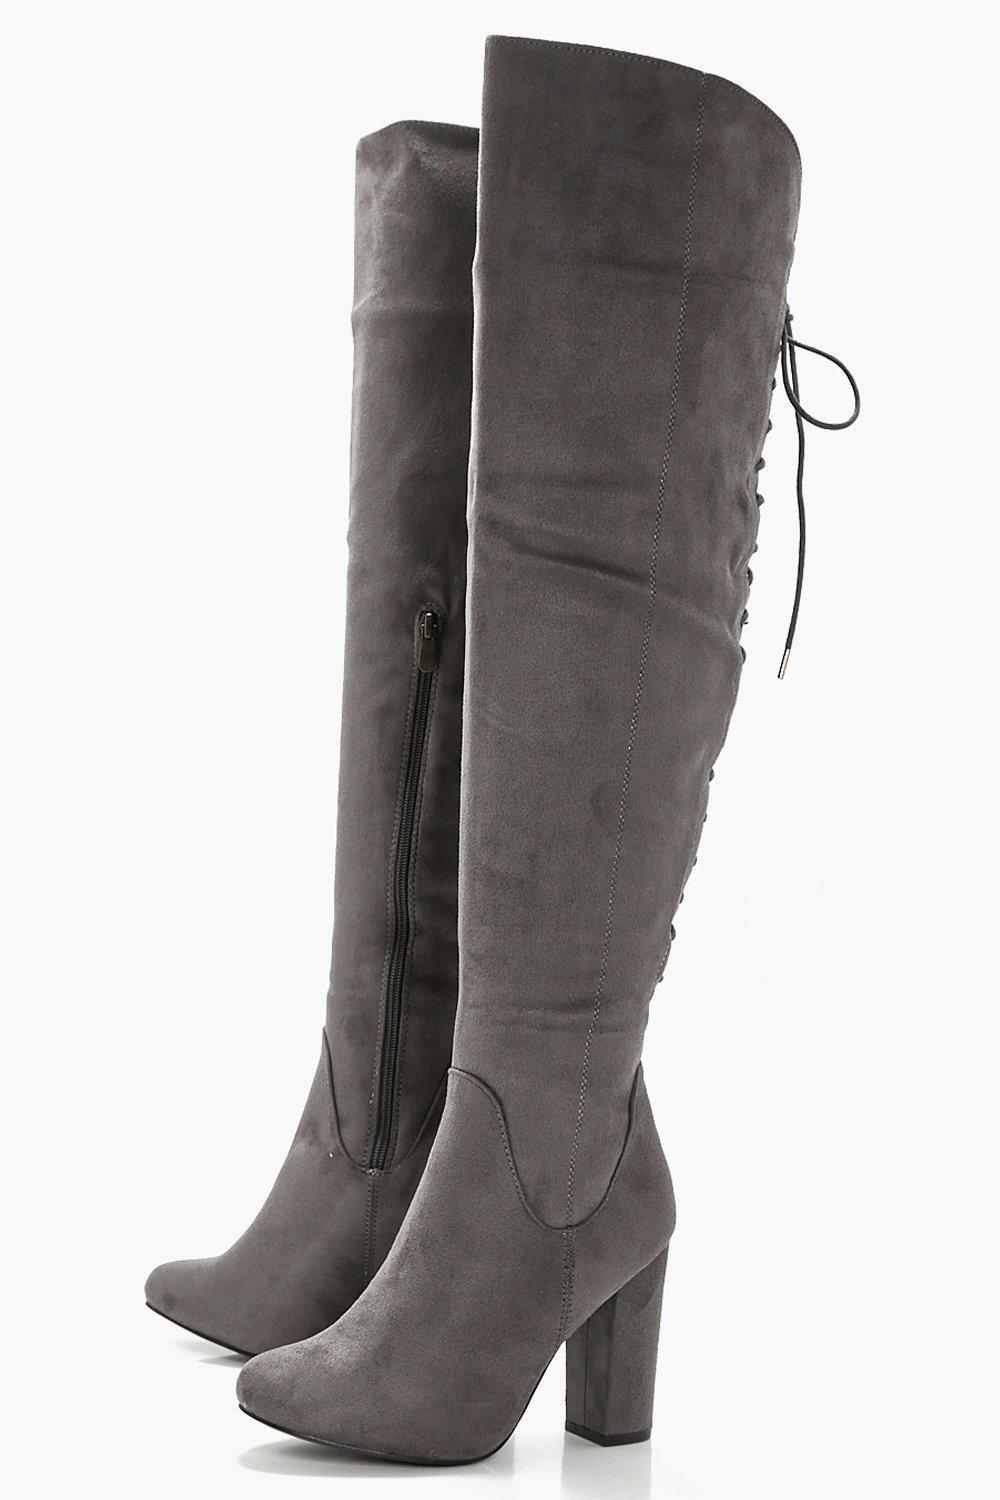 1c84314cc9b Boohoo Lace Back Block Heel Over The Knee Boots in Gray - Lyst